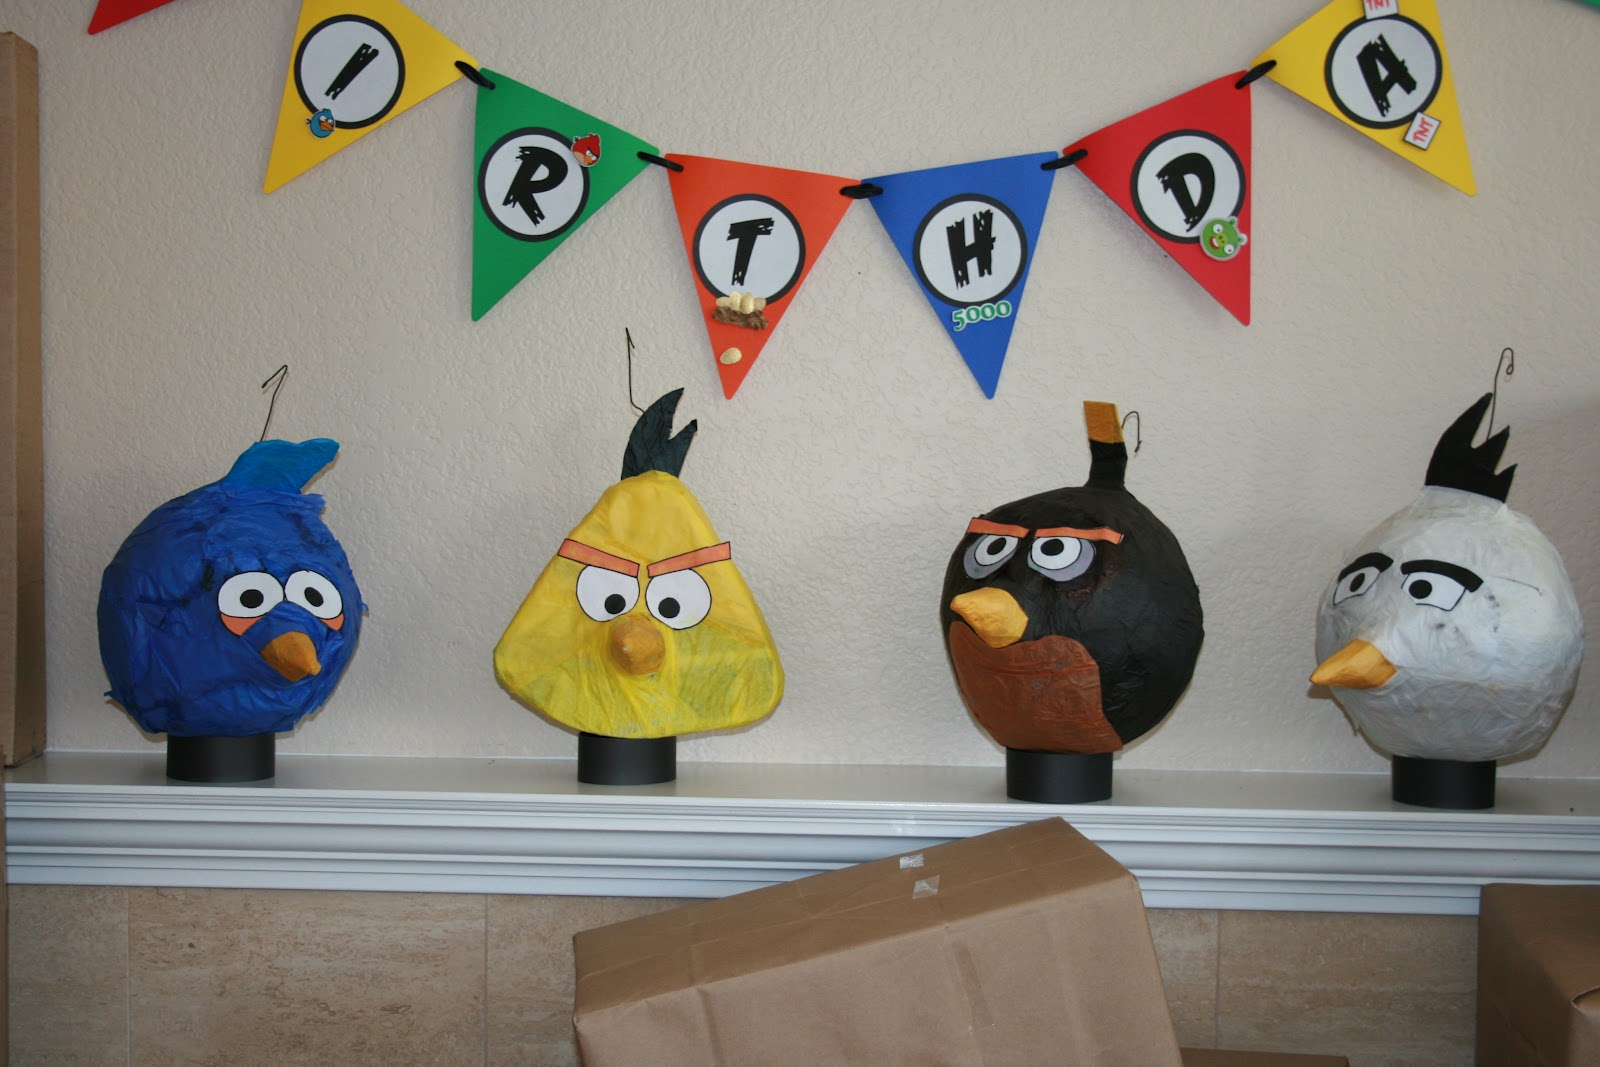 My creative ink angry bird party decorations for Angry bird decoration ideas